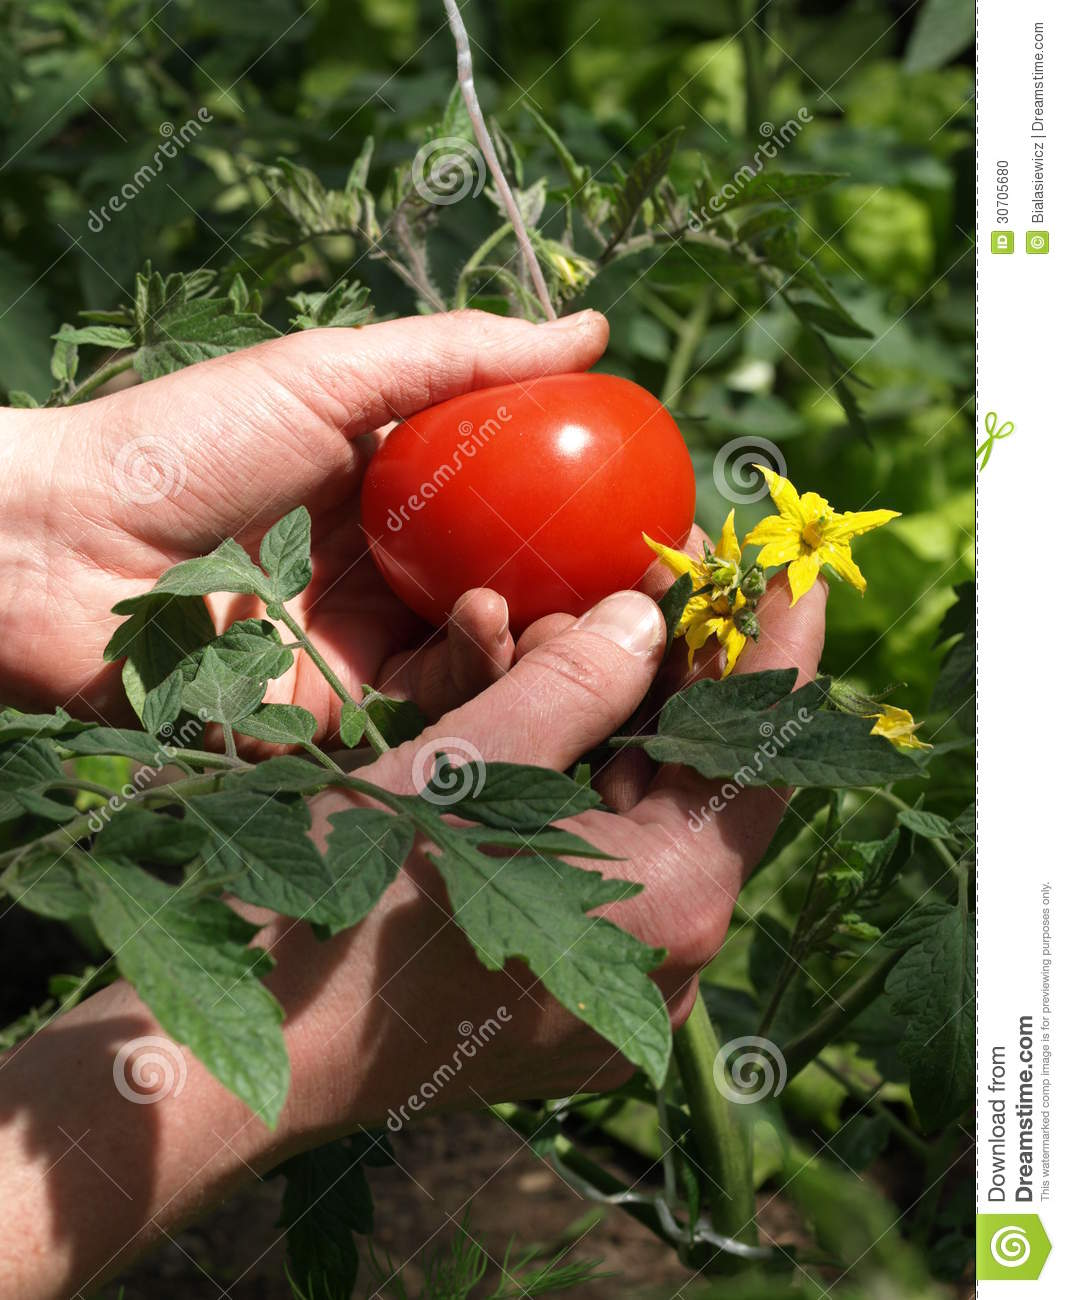 Tomato From Flower To Fruit | how to grow tomato plants ... Tomato Plant Flower To Fruit